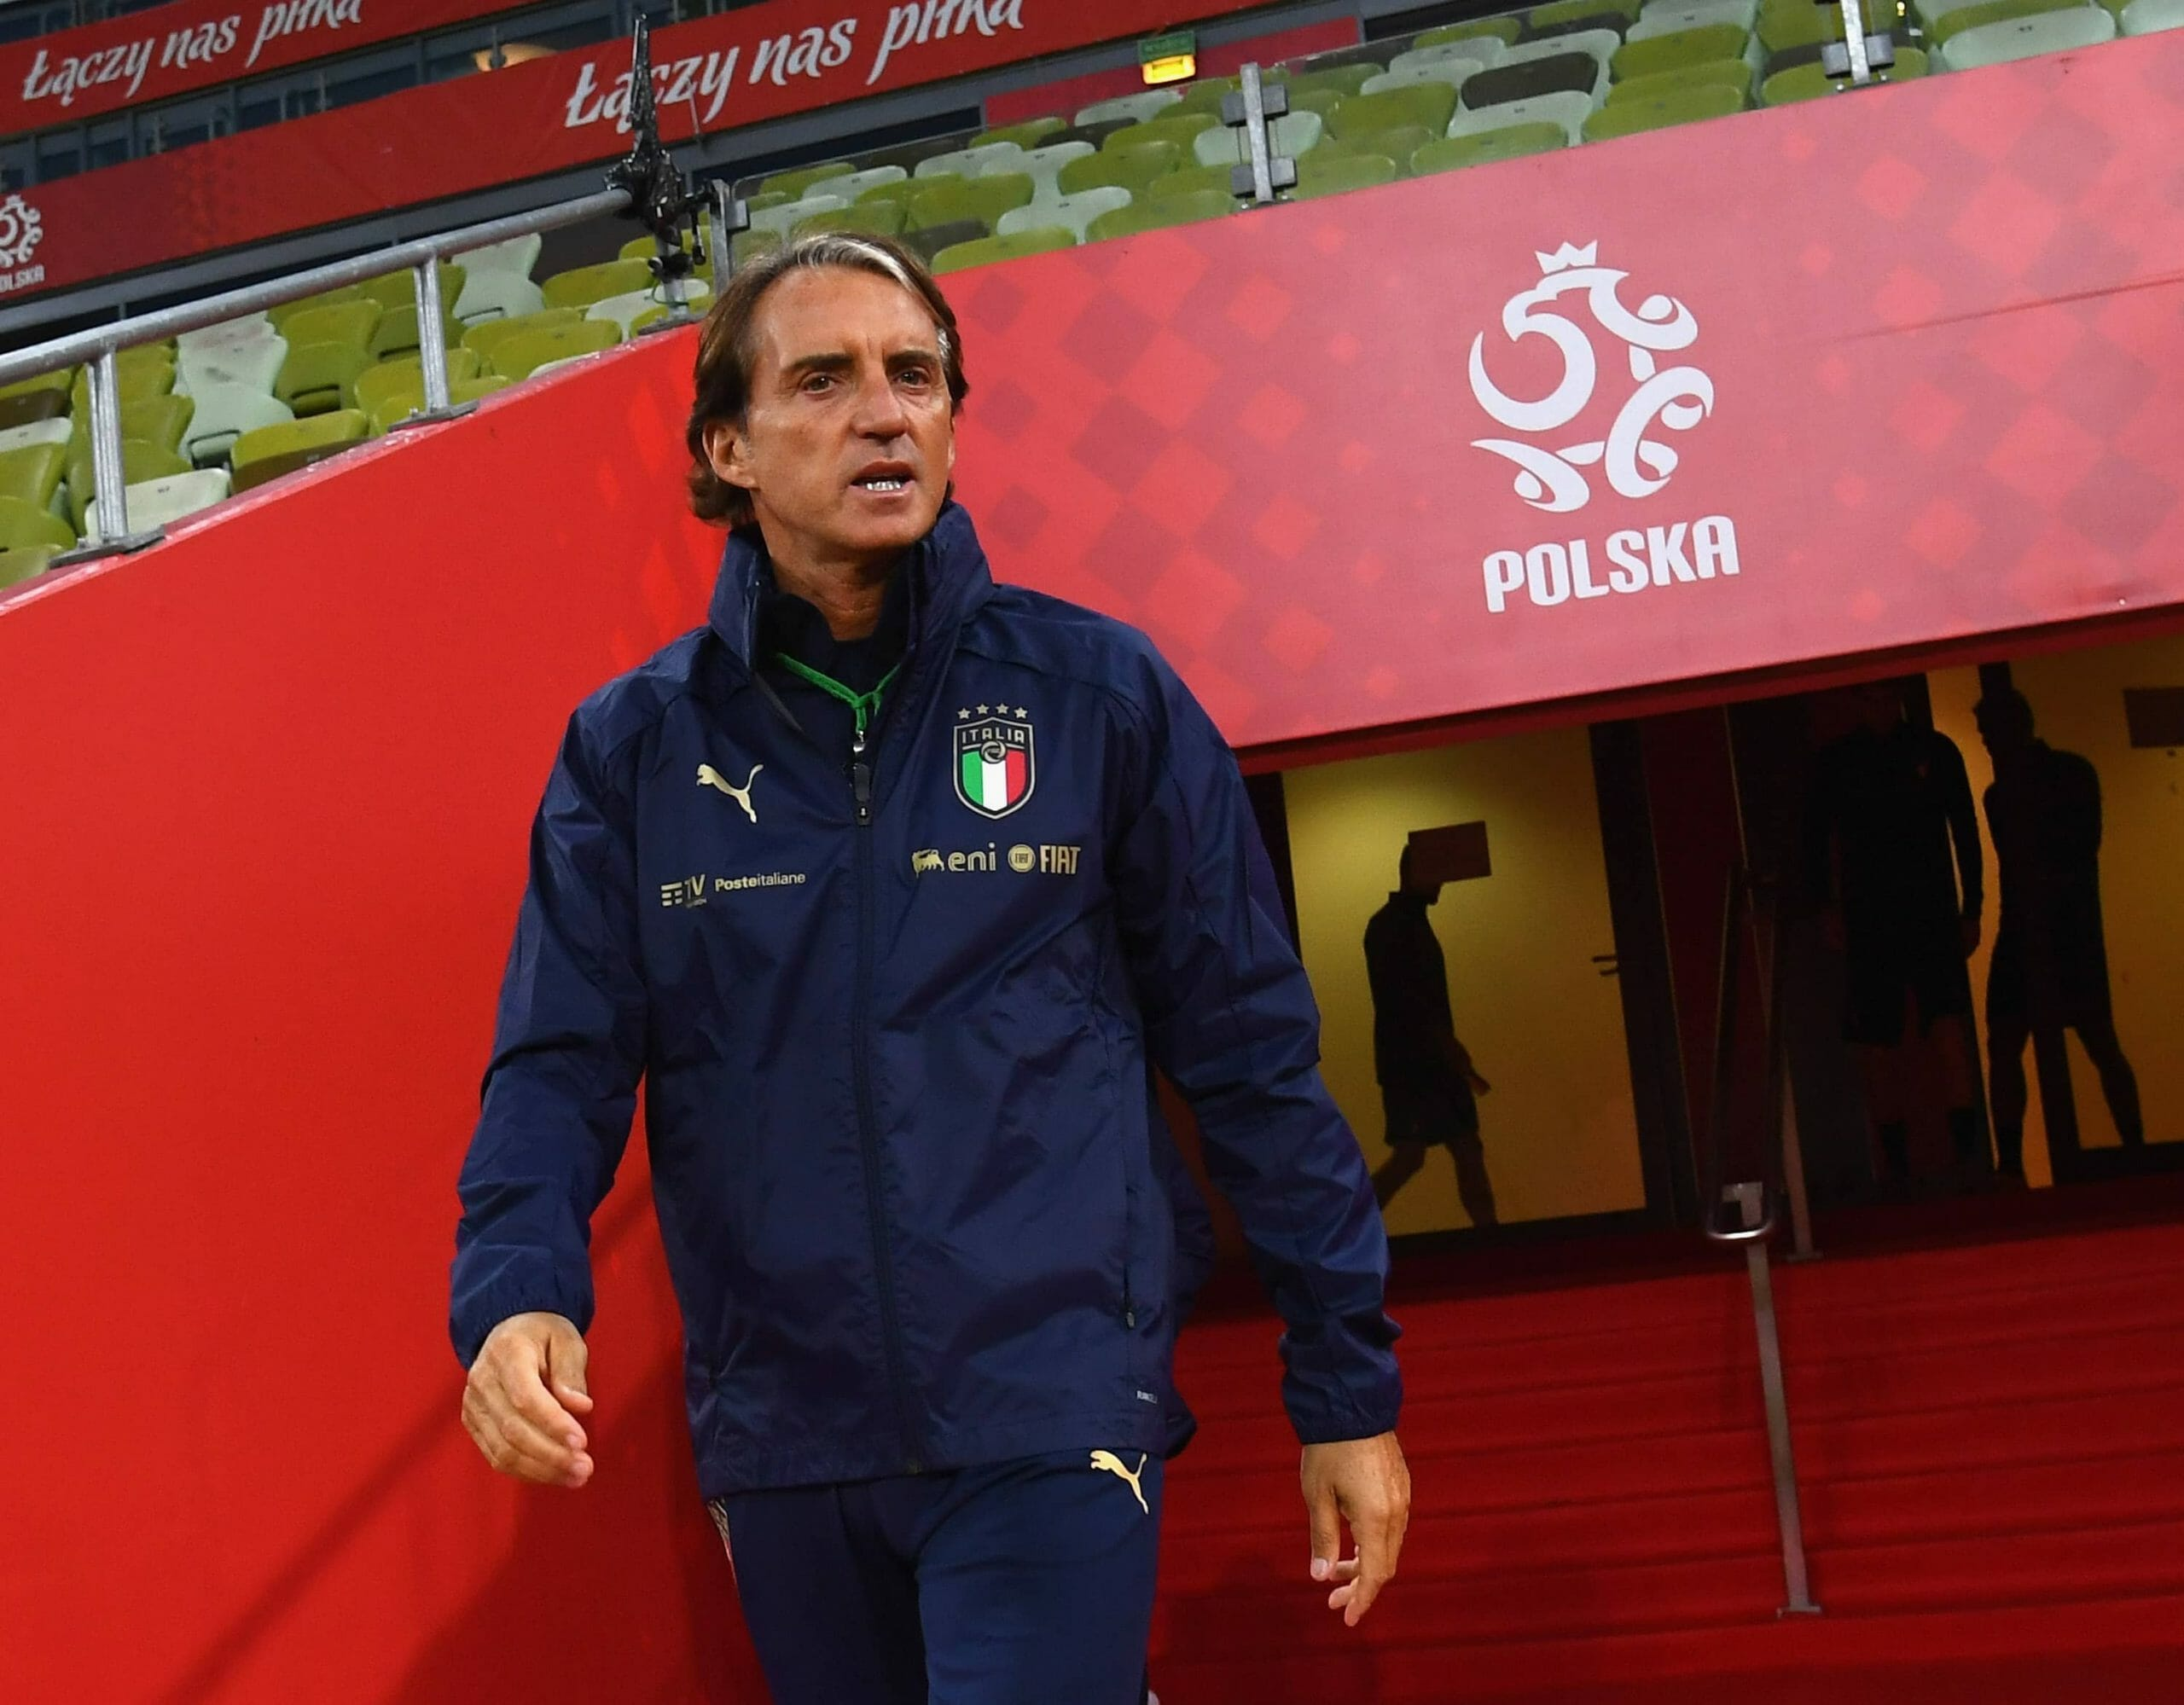 polonia vs italia nations league roberto mancini